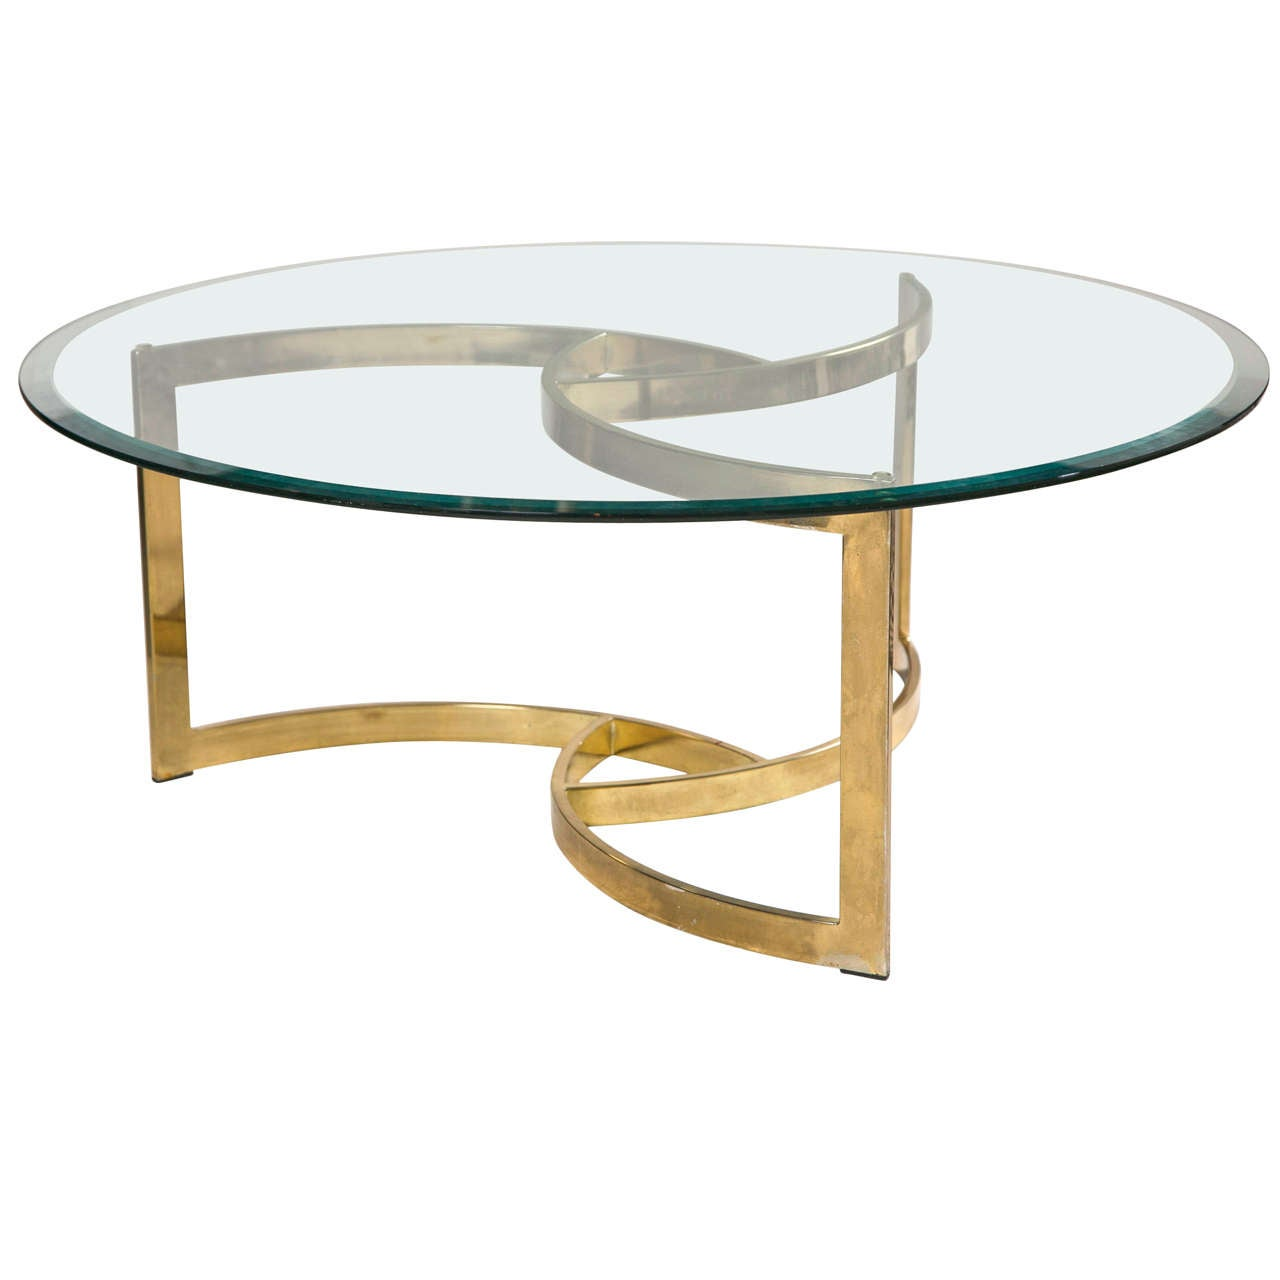 Round glass table tops - Mid Century Brass Swirl Base With Round Glass Top Coffee Table 1